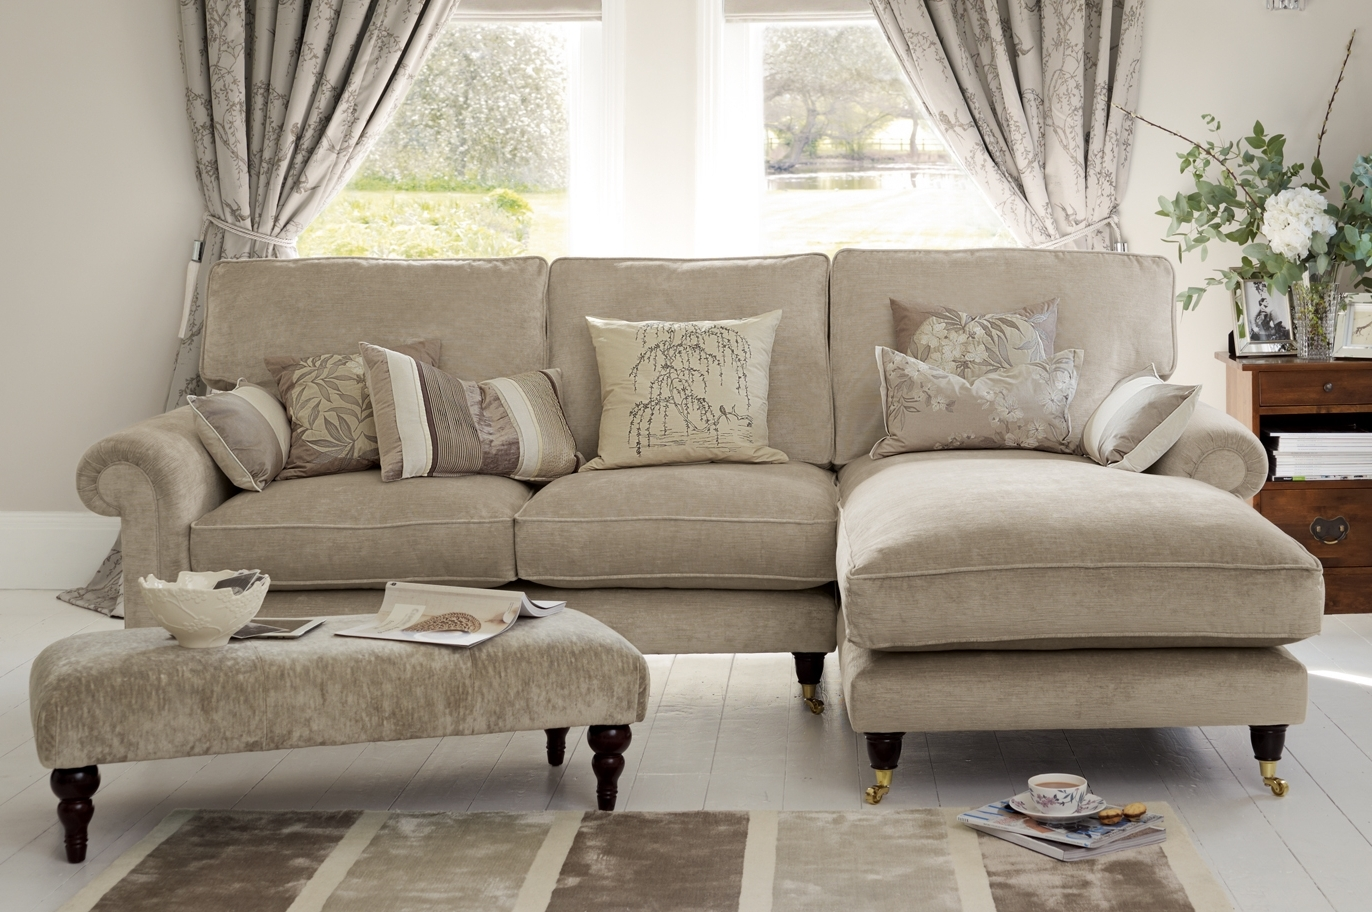 """Ashley Chaise Lounges Regarding Current Kingston"""" Sectional Sofa With Chaise In Sable Beige From Laura (View 2 of 15)"""